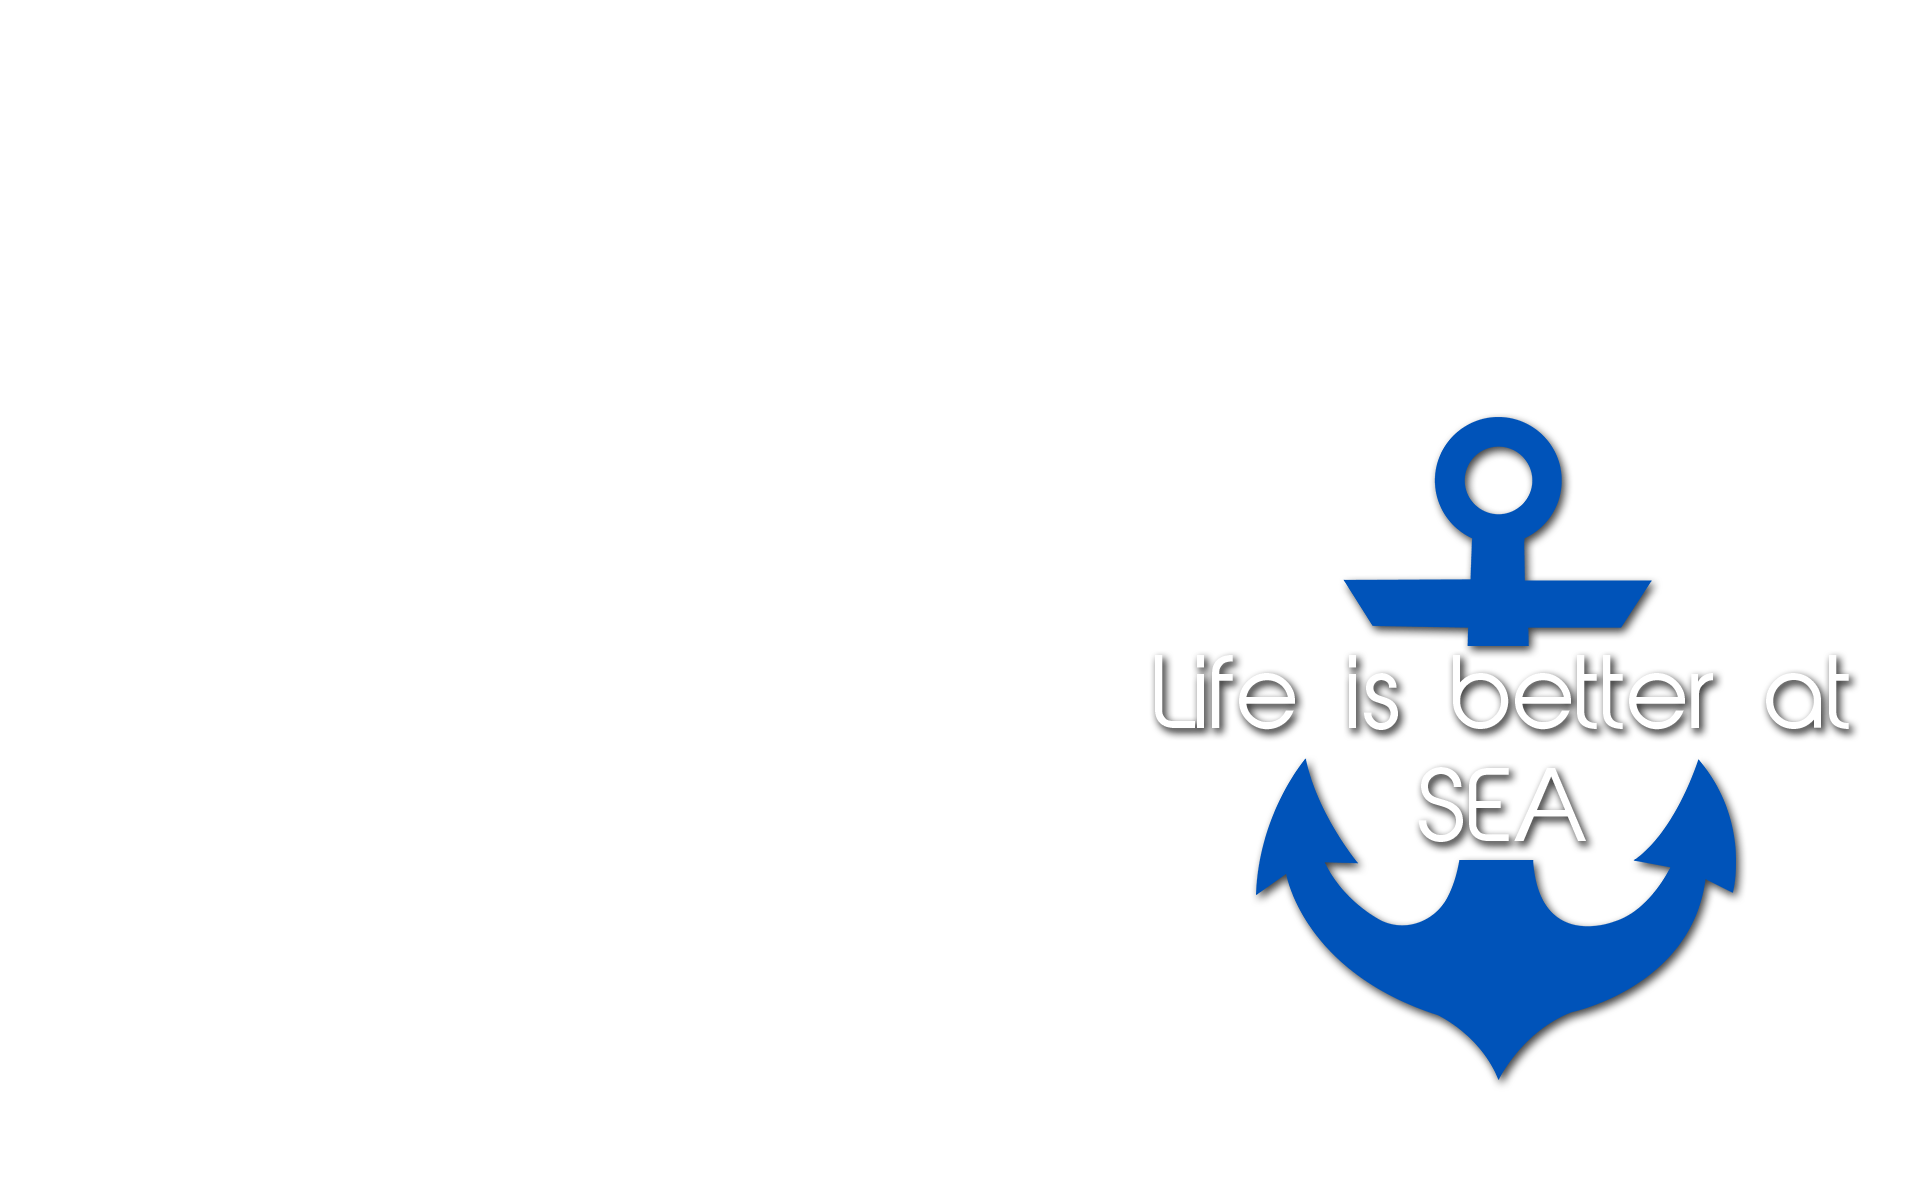 Anchor: life is better at sea